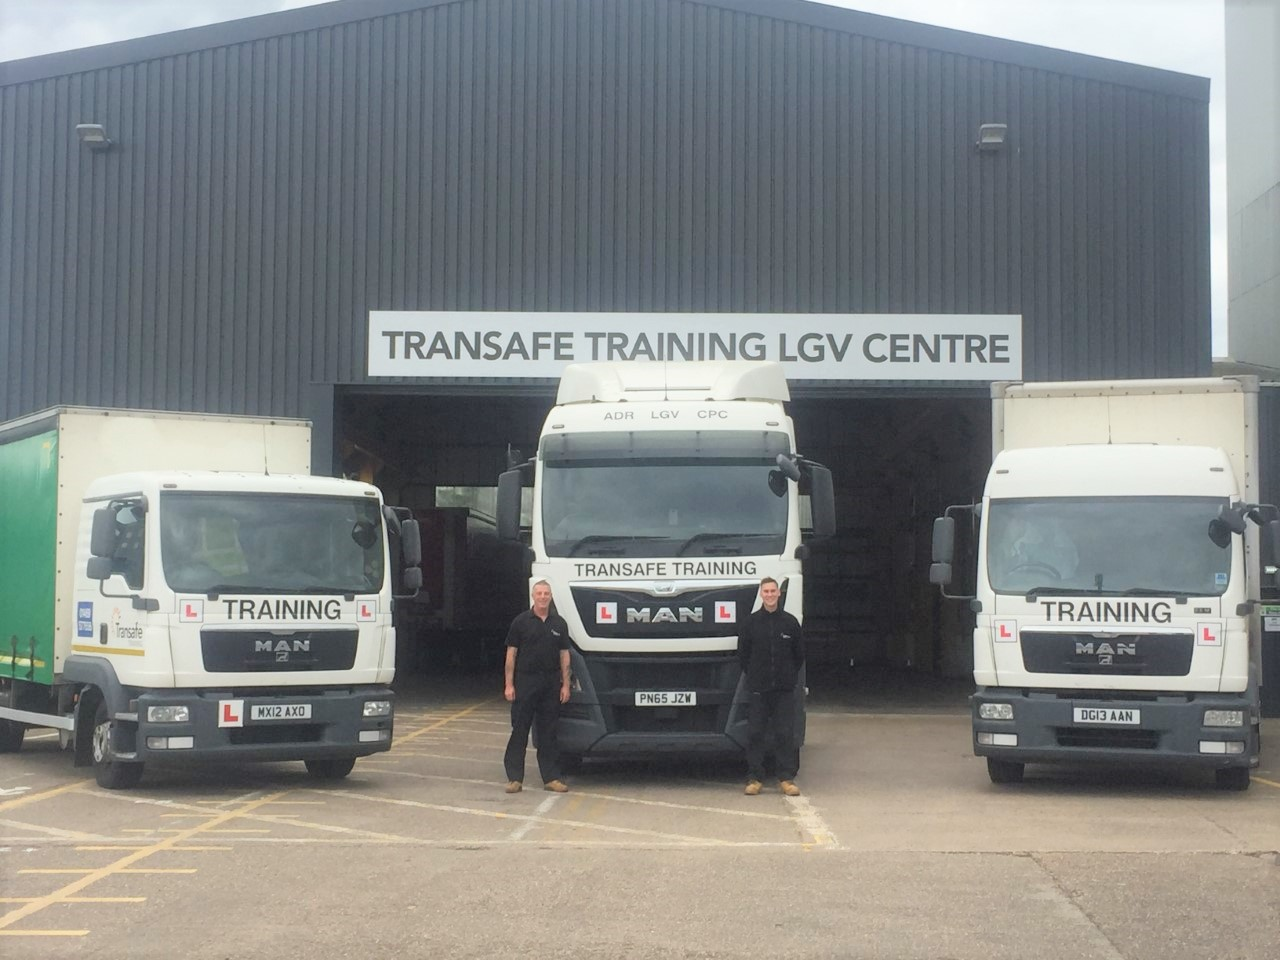 LGV_Training_Centre